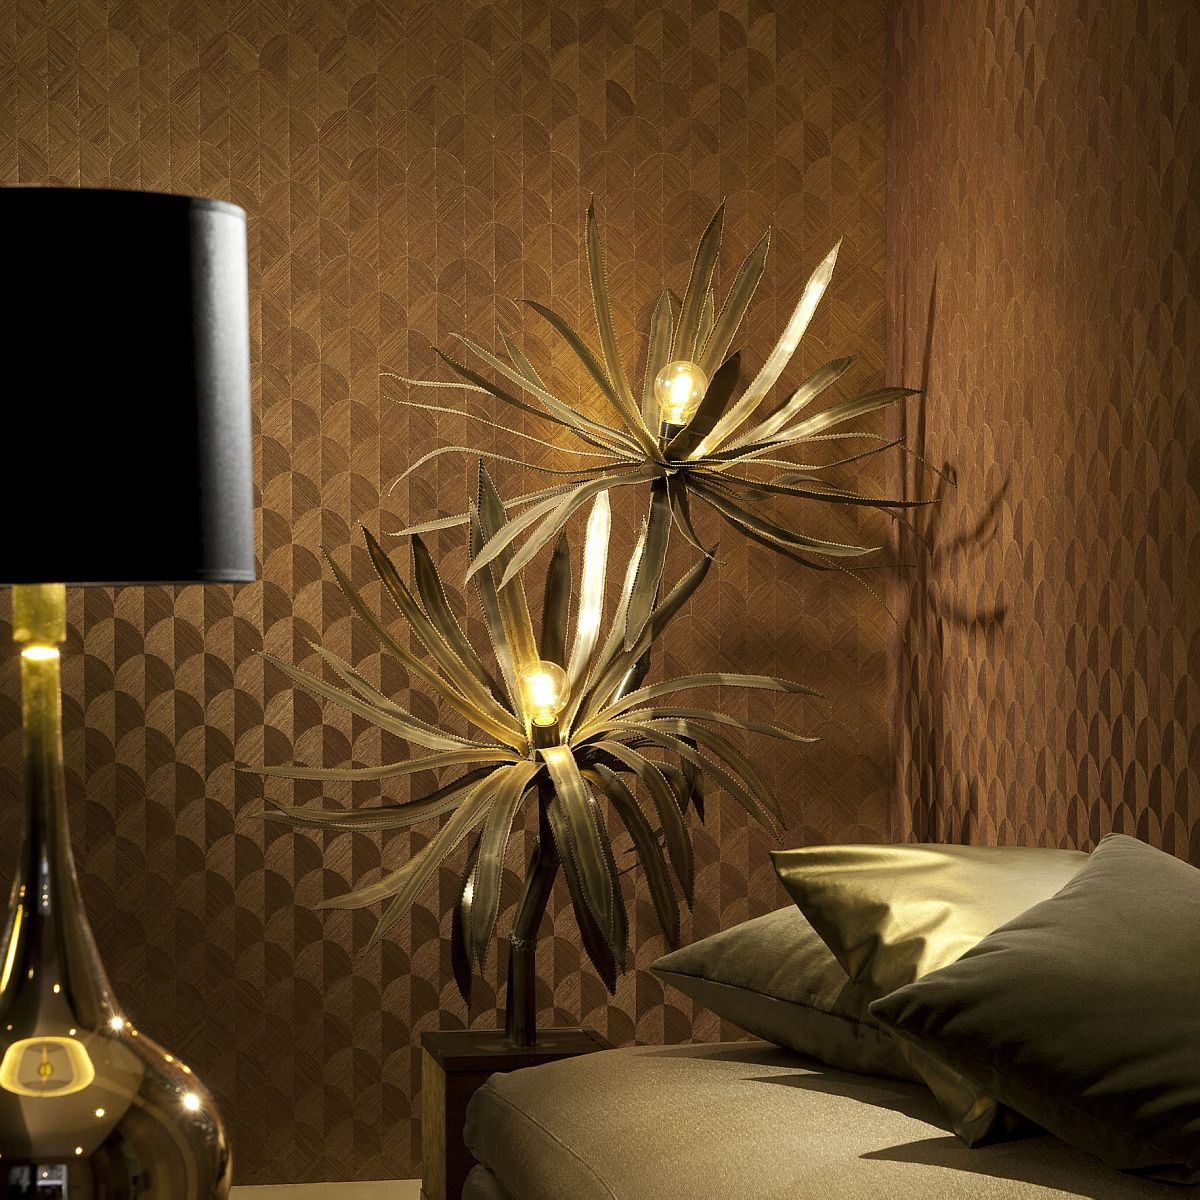 high quality wallpapers and fabrics non woven sisal wallpaper scale gold brown 49100. Black Bedroom Furniture Sets. Home Design Ideas